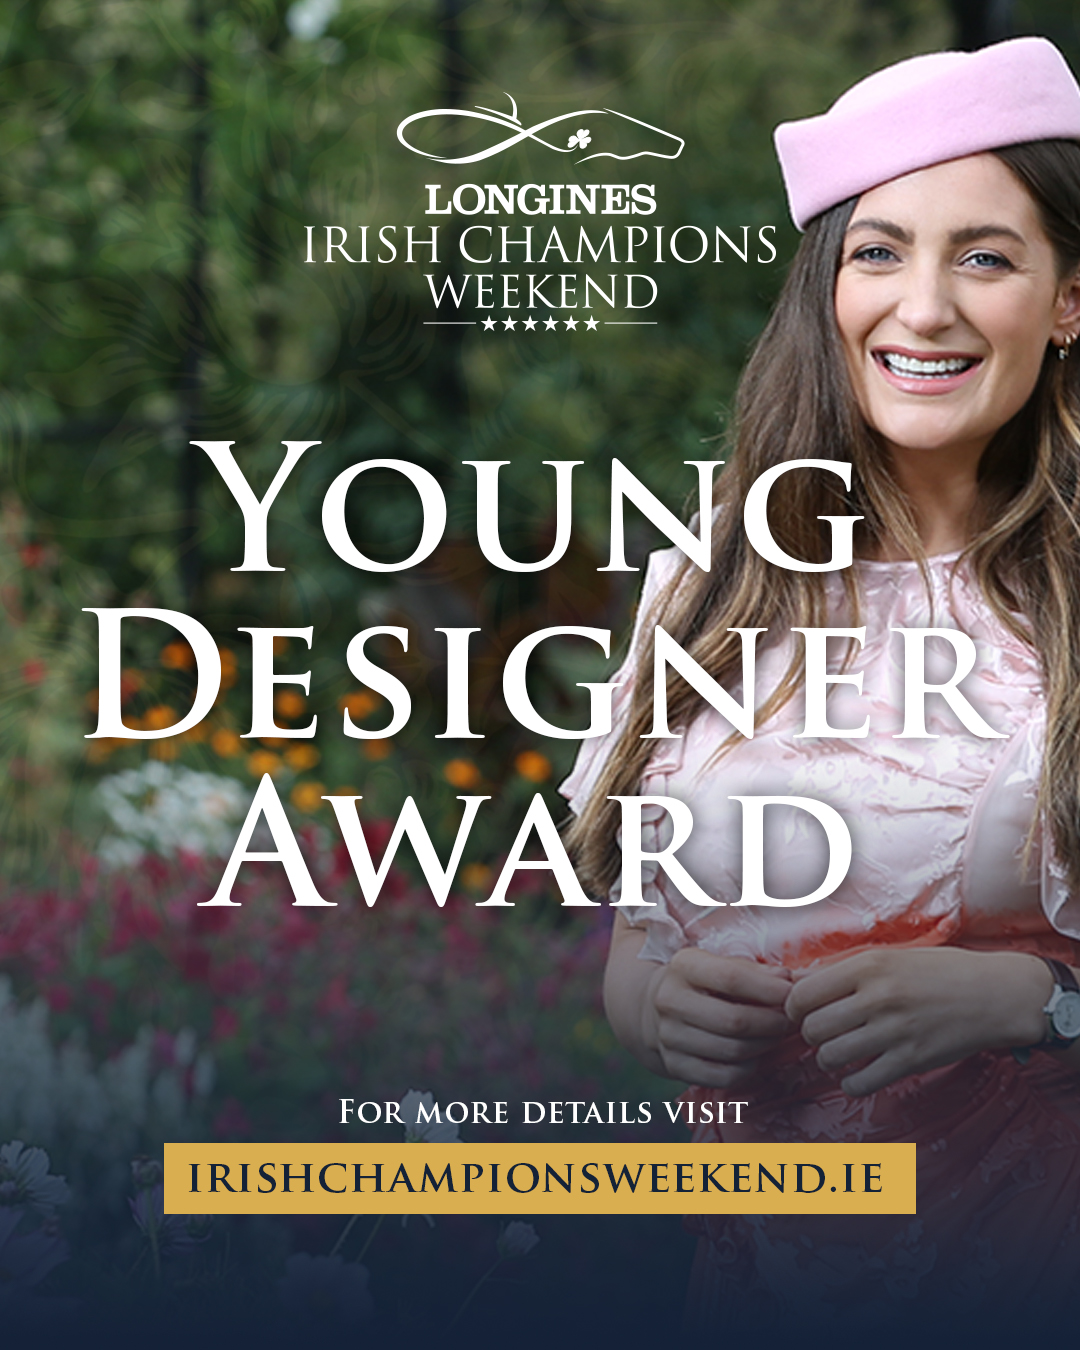 Stylist Courtney Smith Launches the Young Designer Award as part of Longines Irish Champions Weekend festival